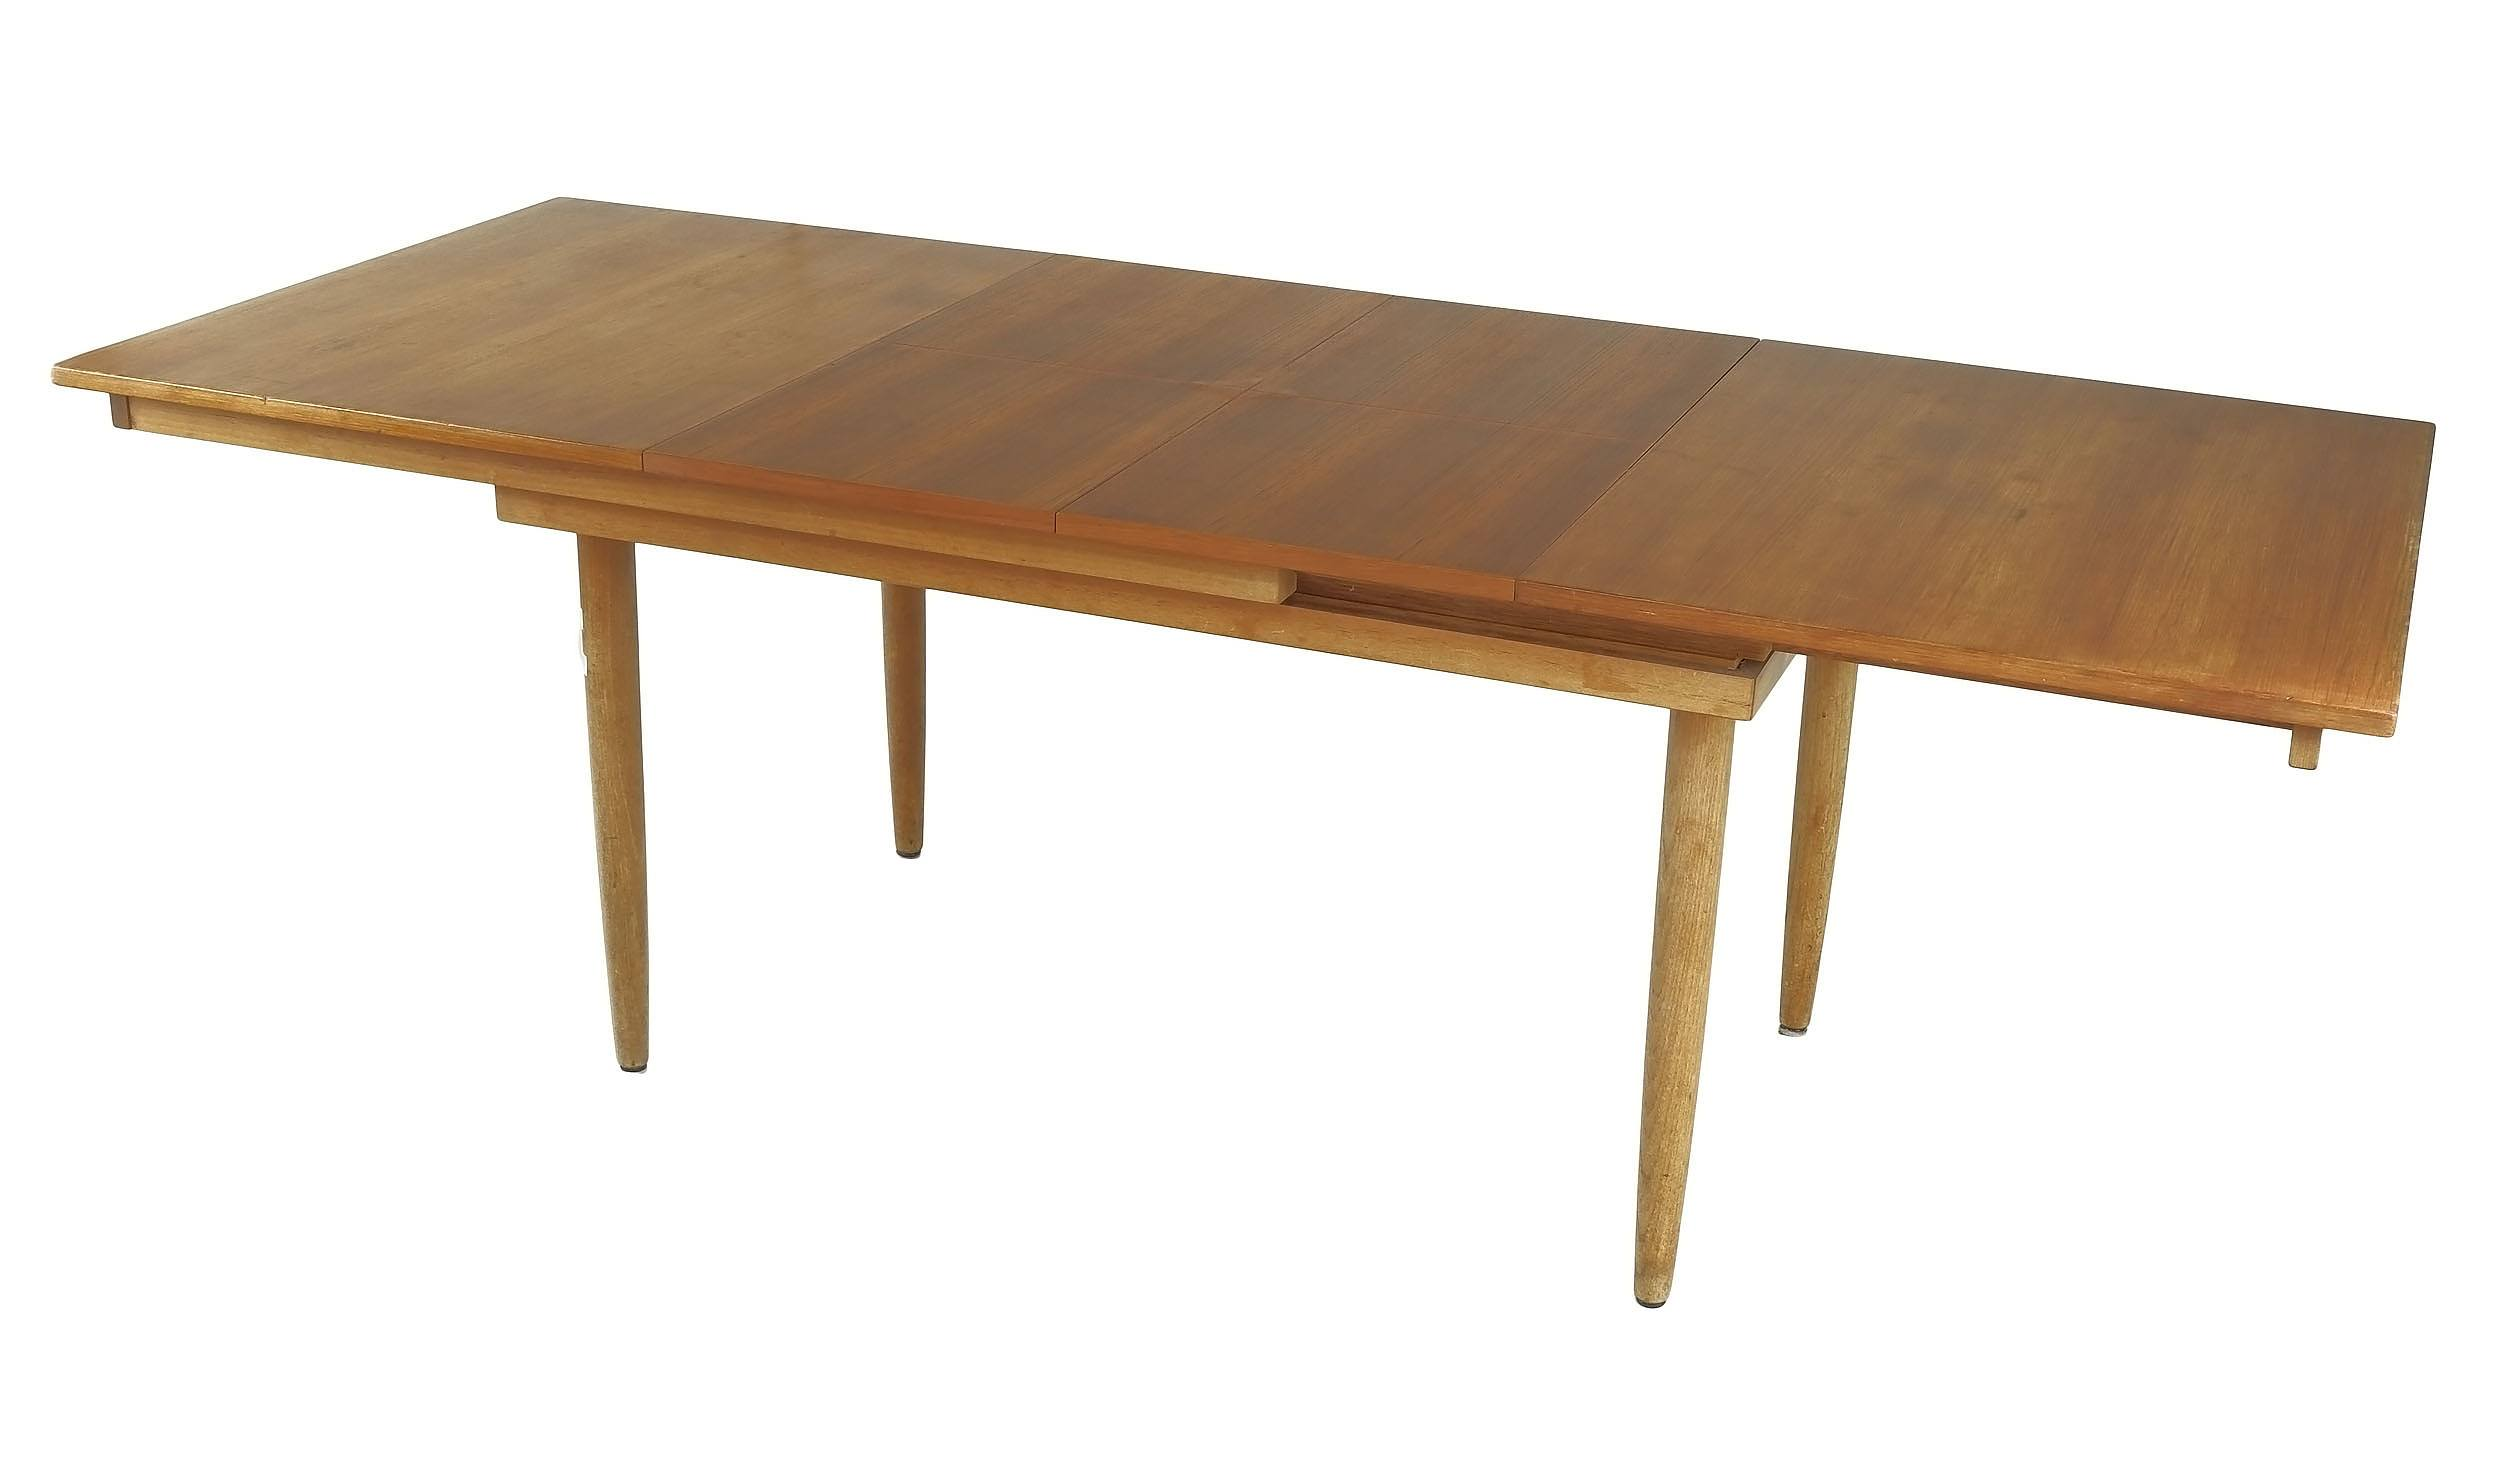 'Chiswell Teak Twin Butterfly Extension Dining Table'